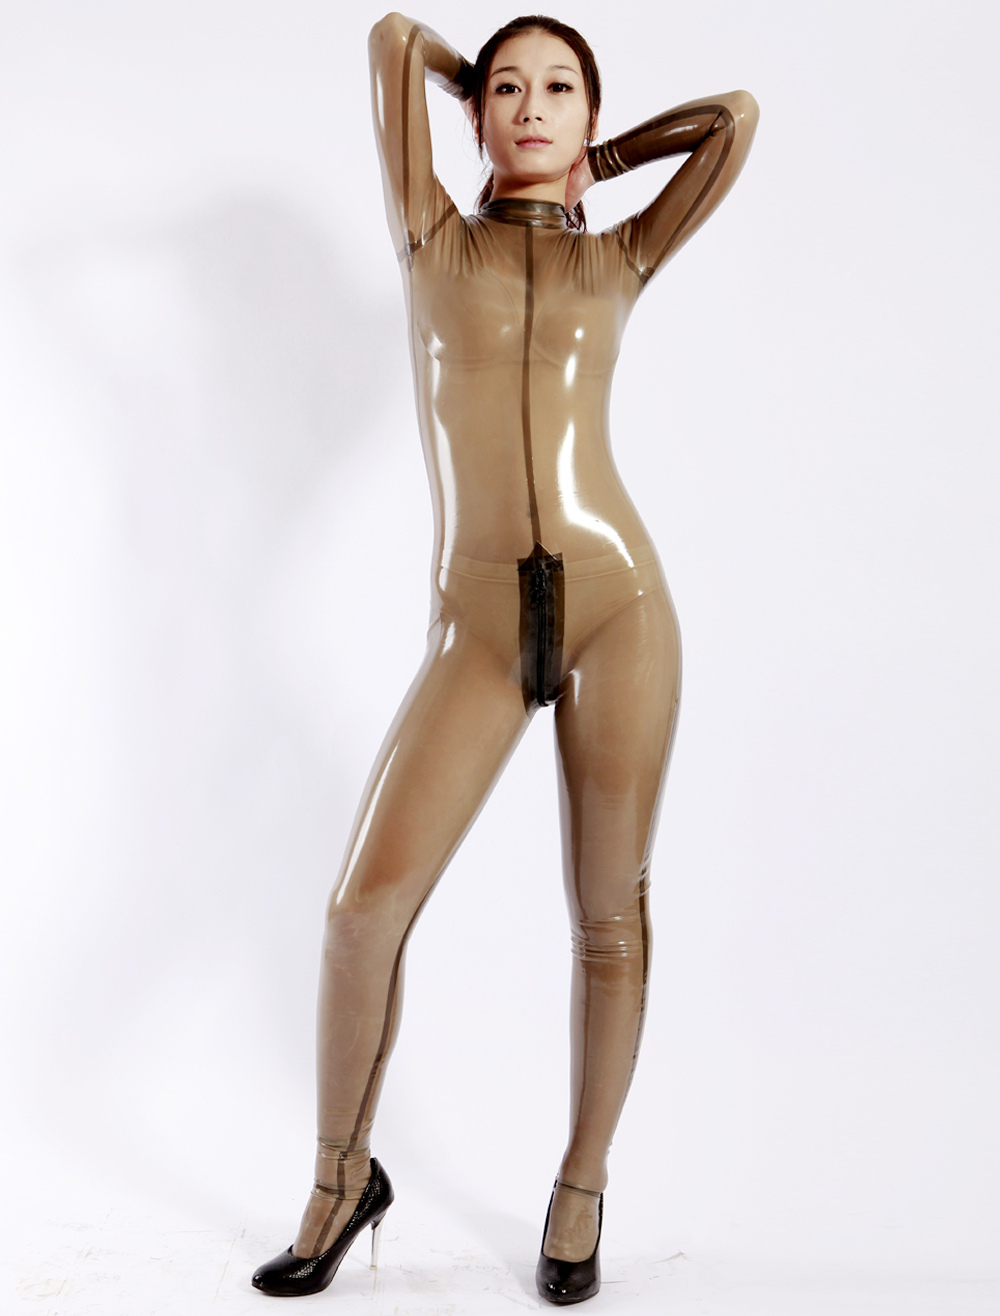 Clear latex clothing